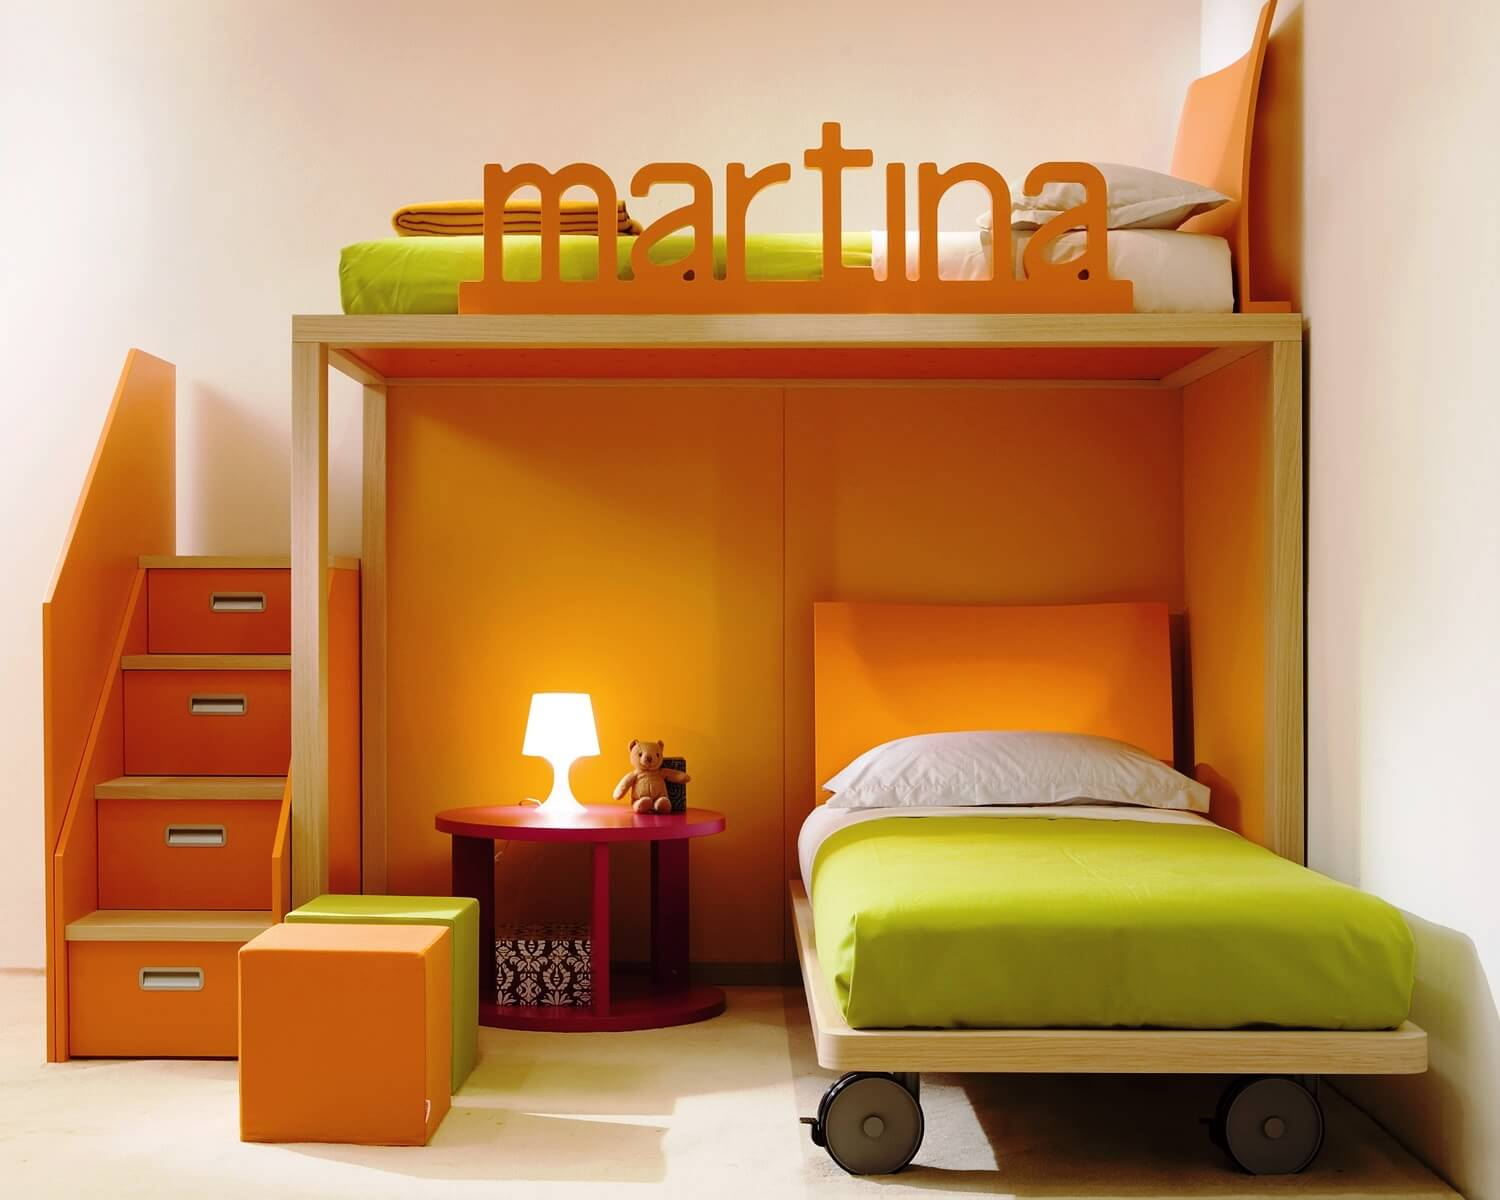 bunk-bed-i-thought-kids-bedroom-ideas-for-small-rooms-spend-a-bed-ideas-for-small-rooms-l-535eb188e48d6990 (1)